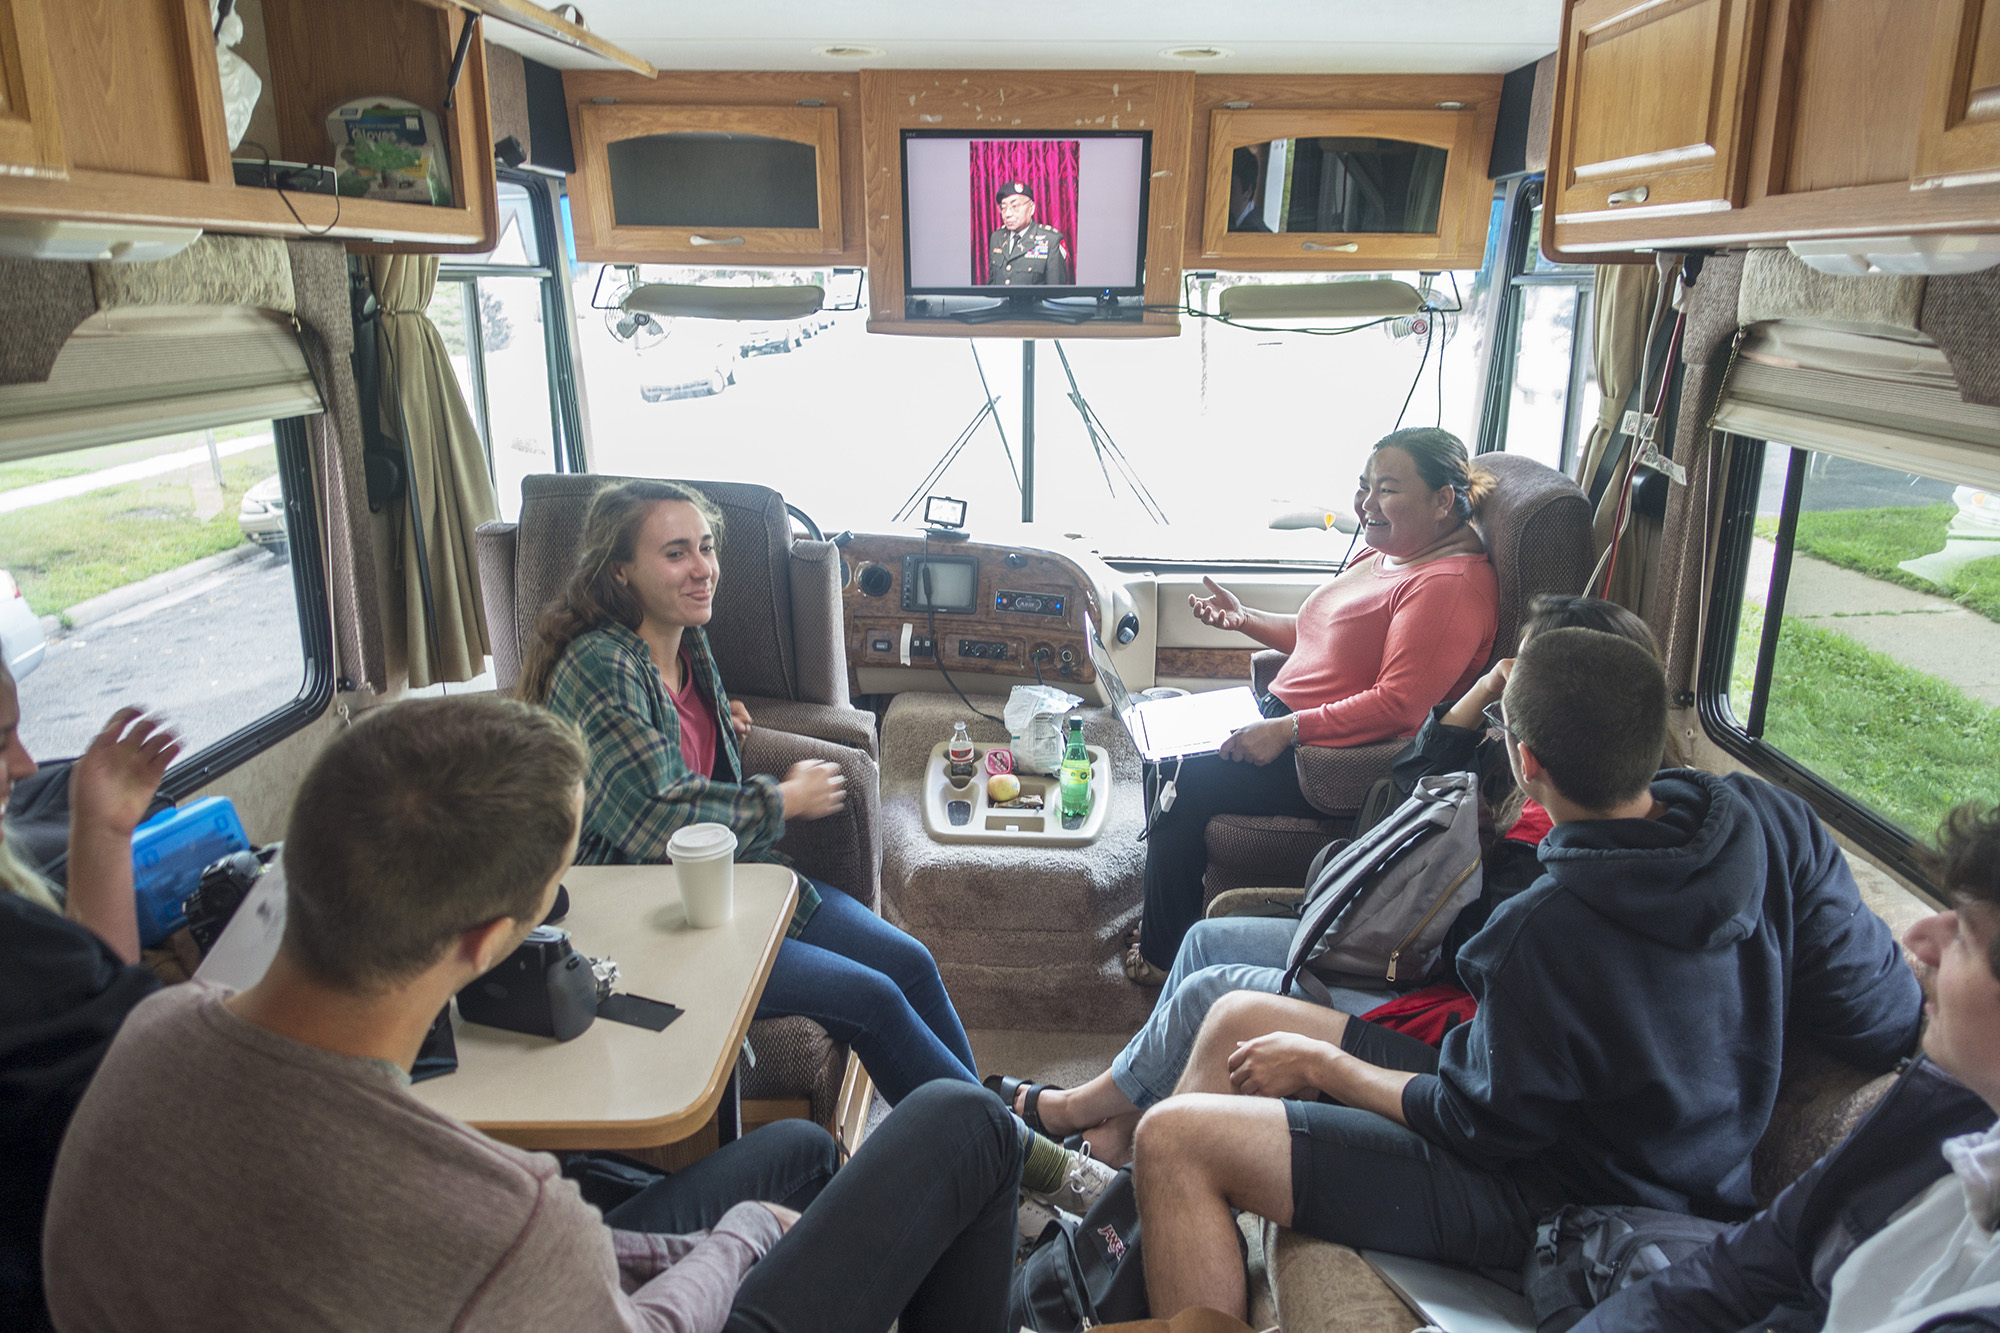 Winnebago Workshop puts young artists on the road to discovery